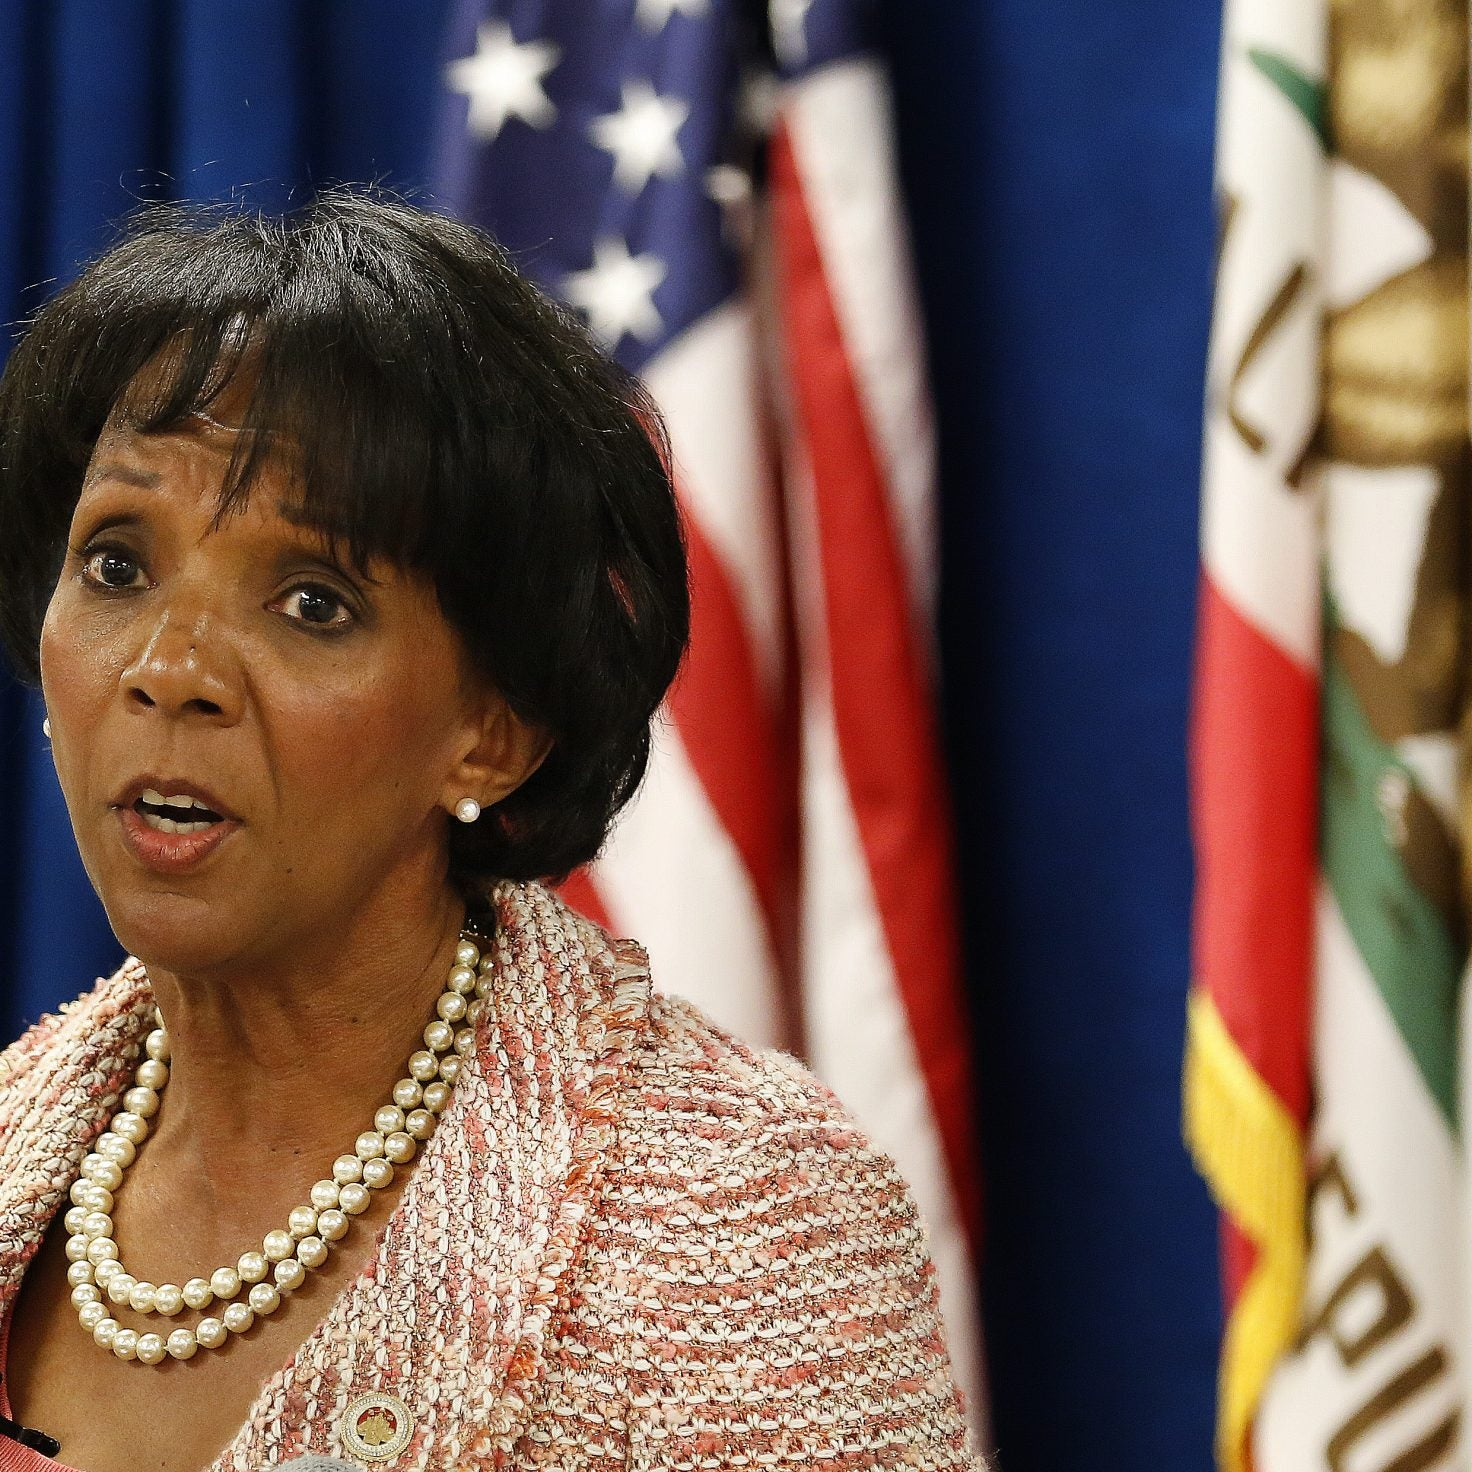 After Gun Pointing Incident, L.A. County District Attorney's Husband Under Review